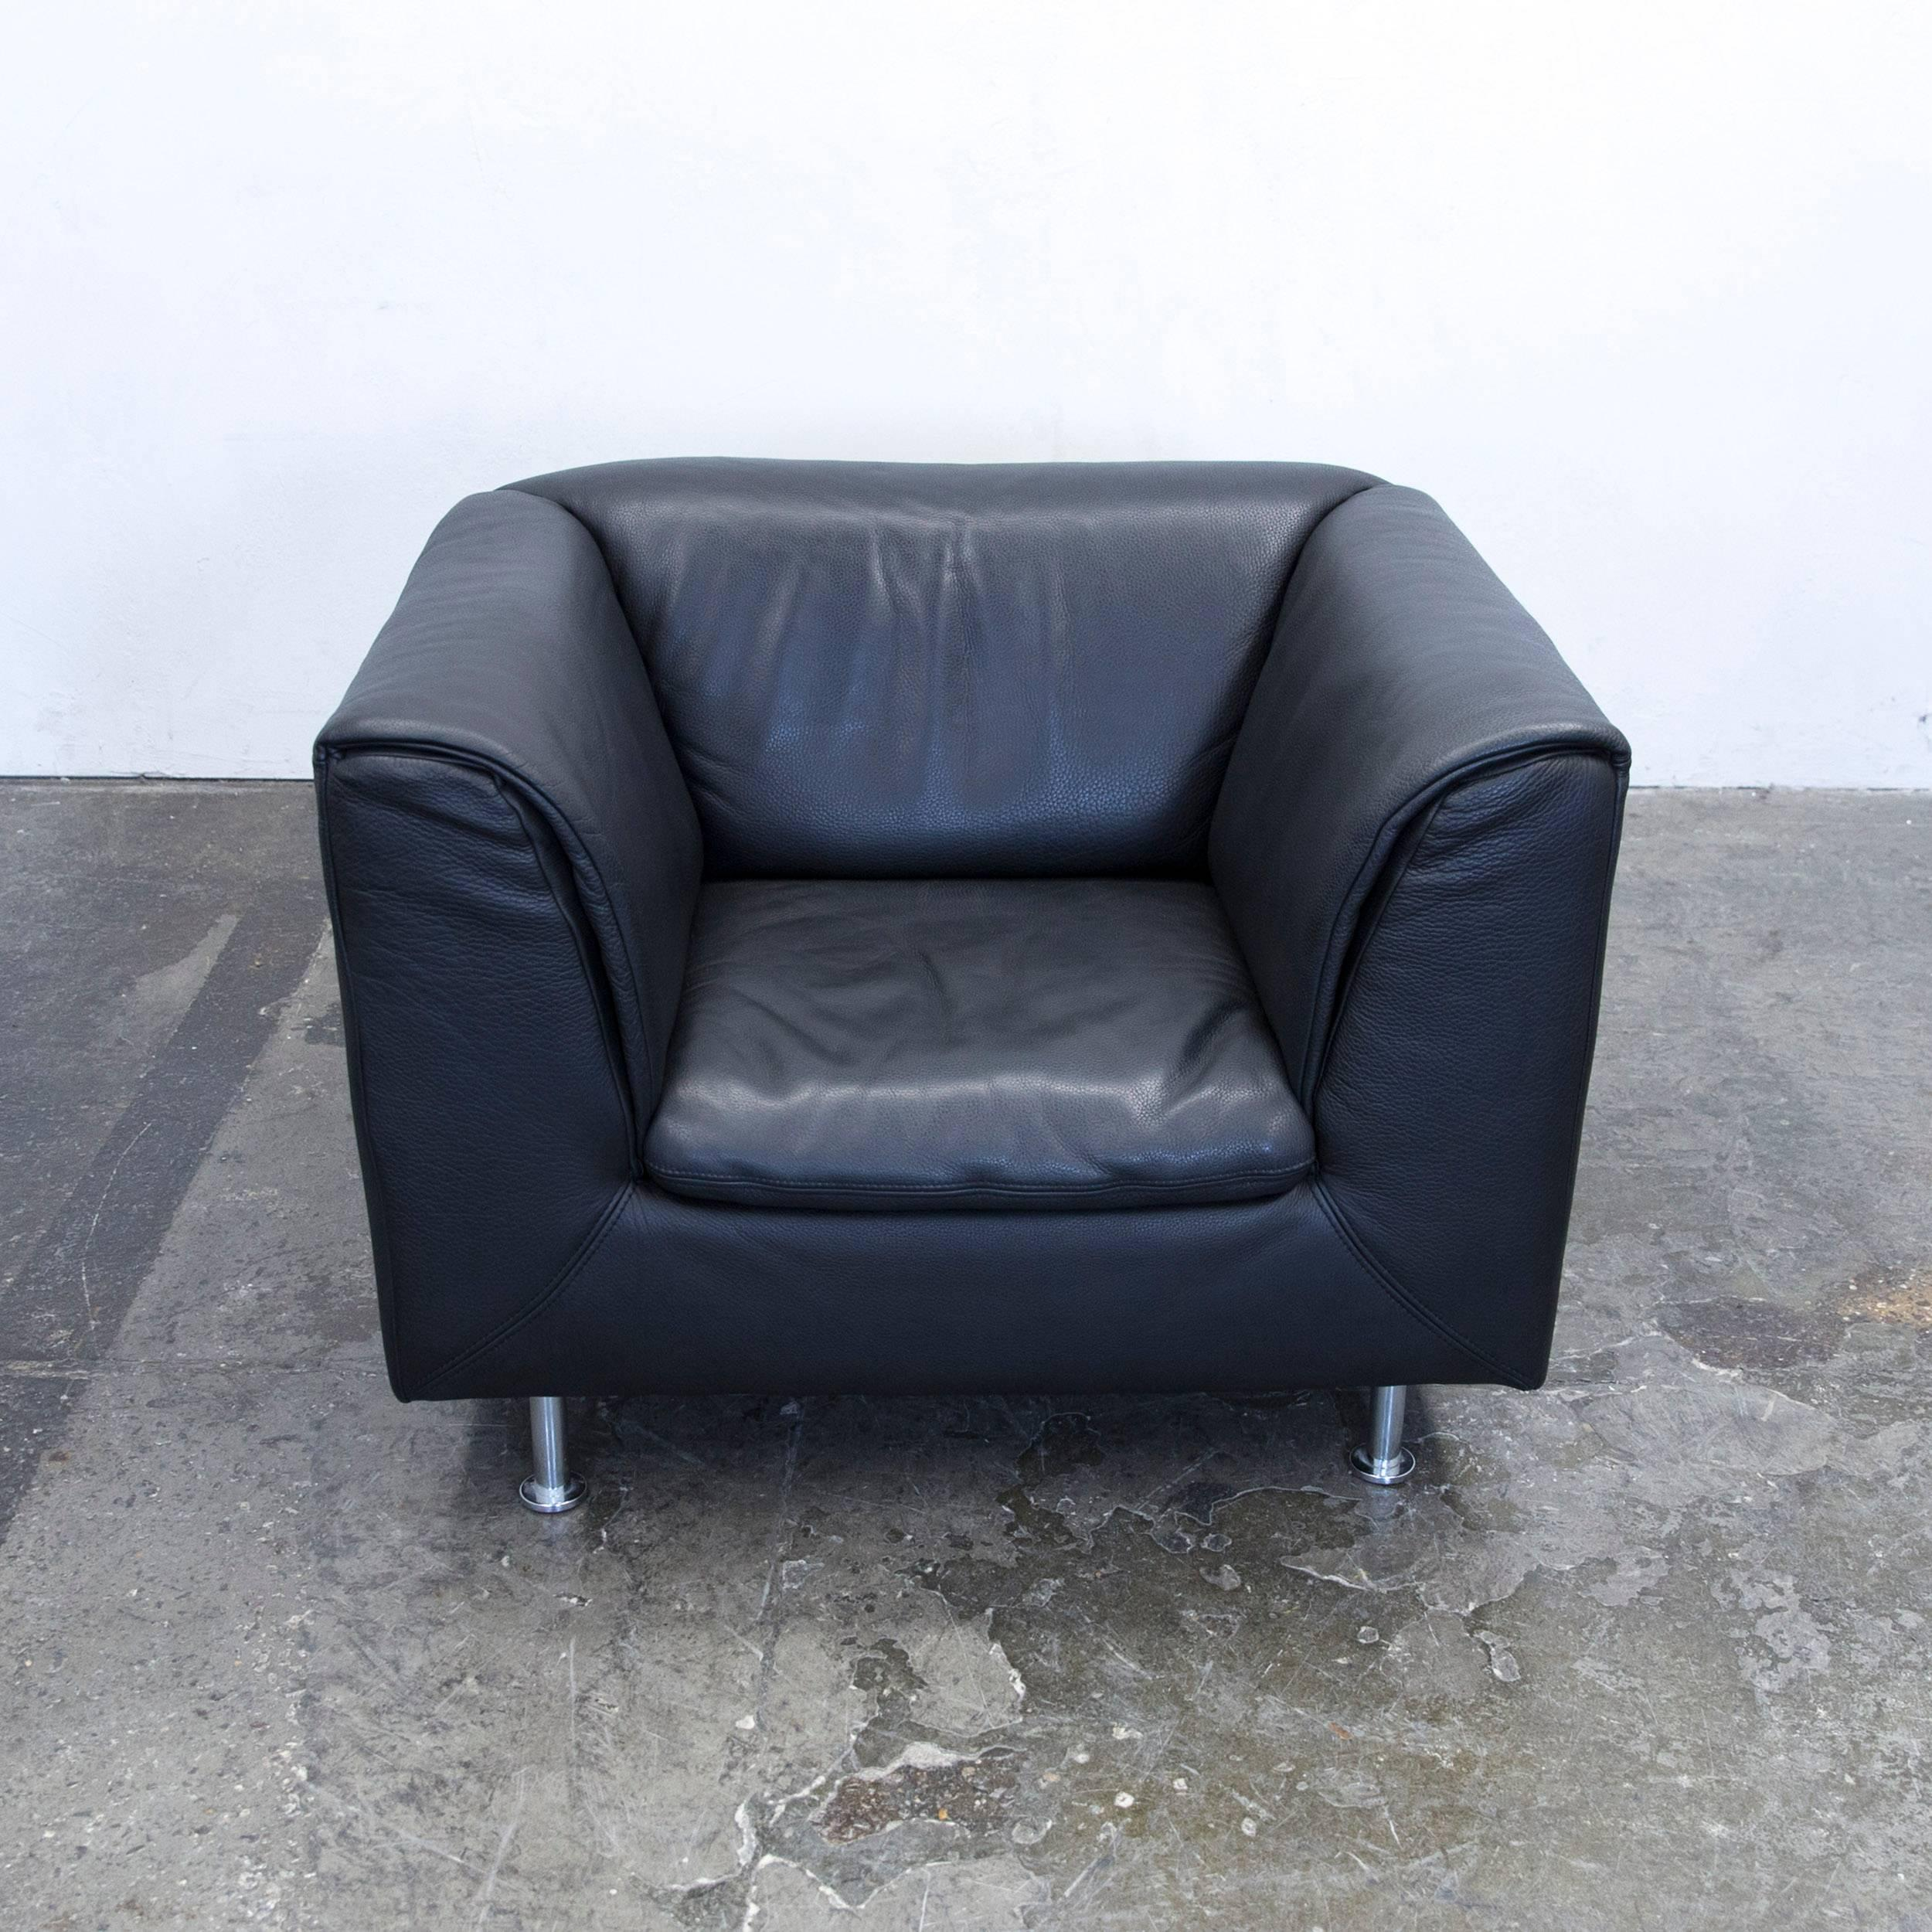 Skull Sessel Willi Schillig Designer Armchair Leather Anthrazit Black One Seat Couch